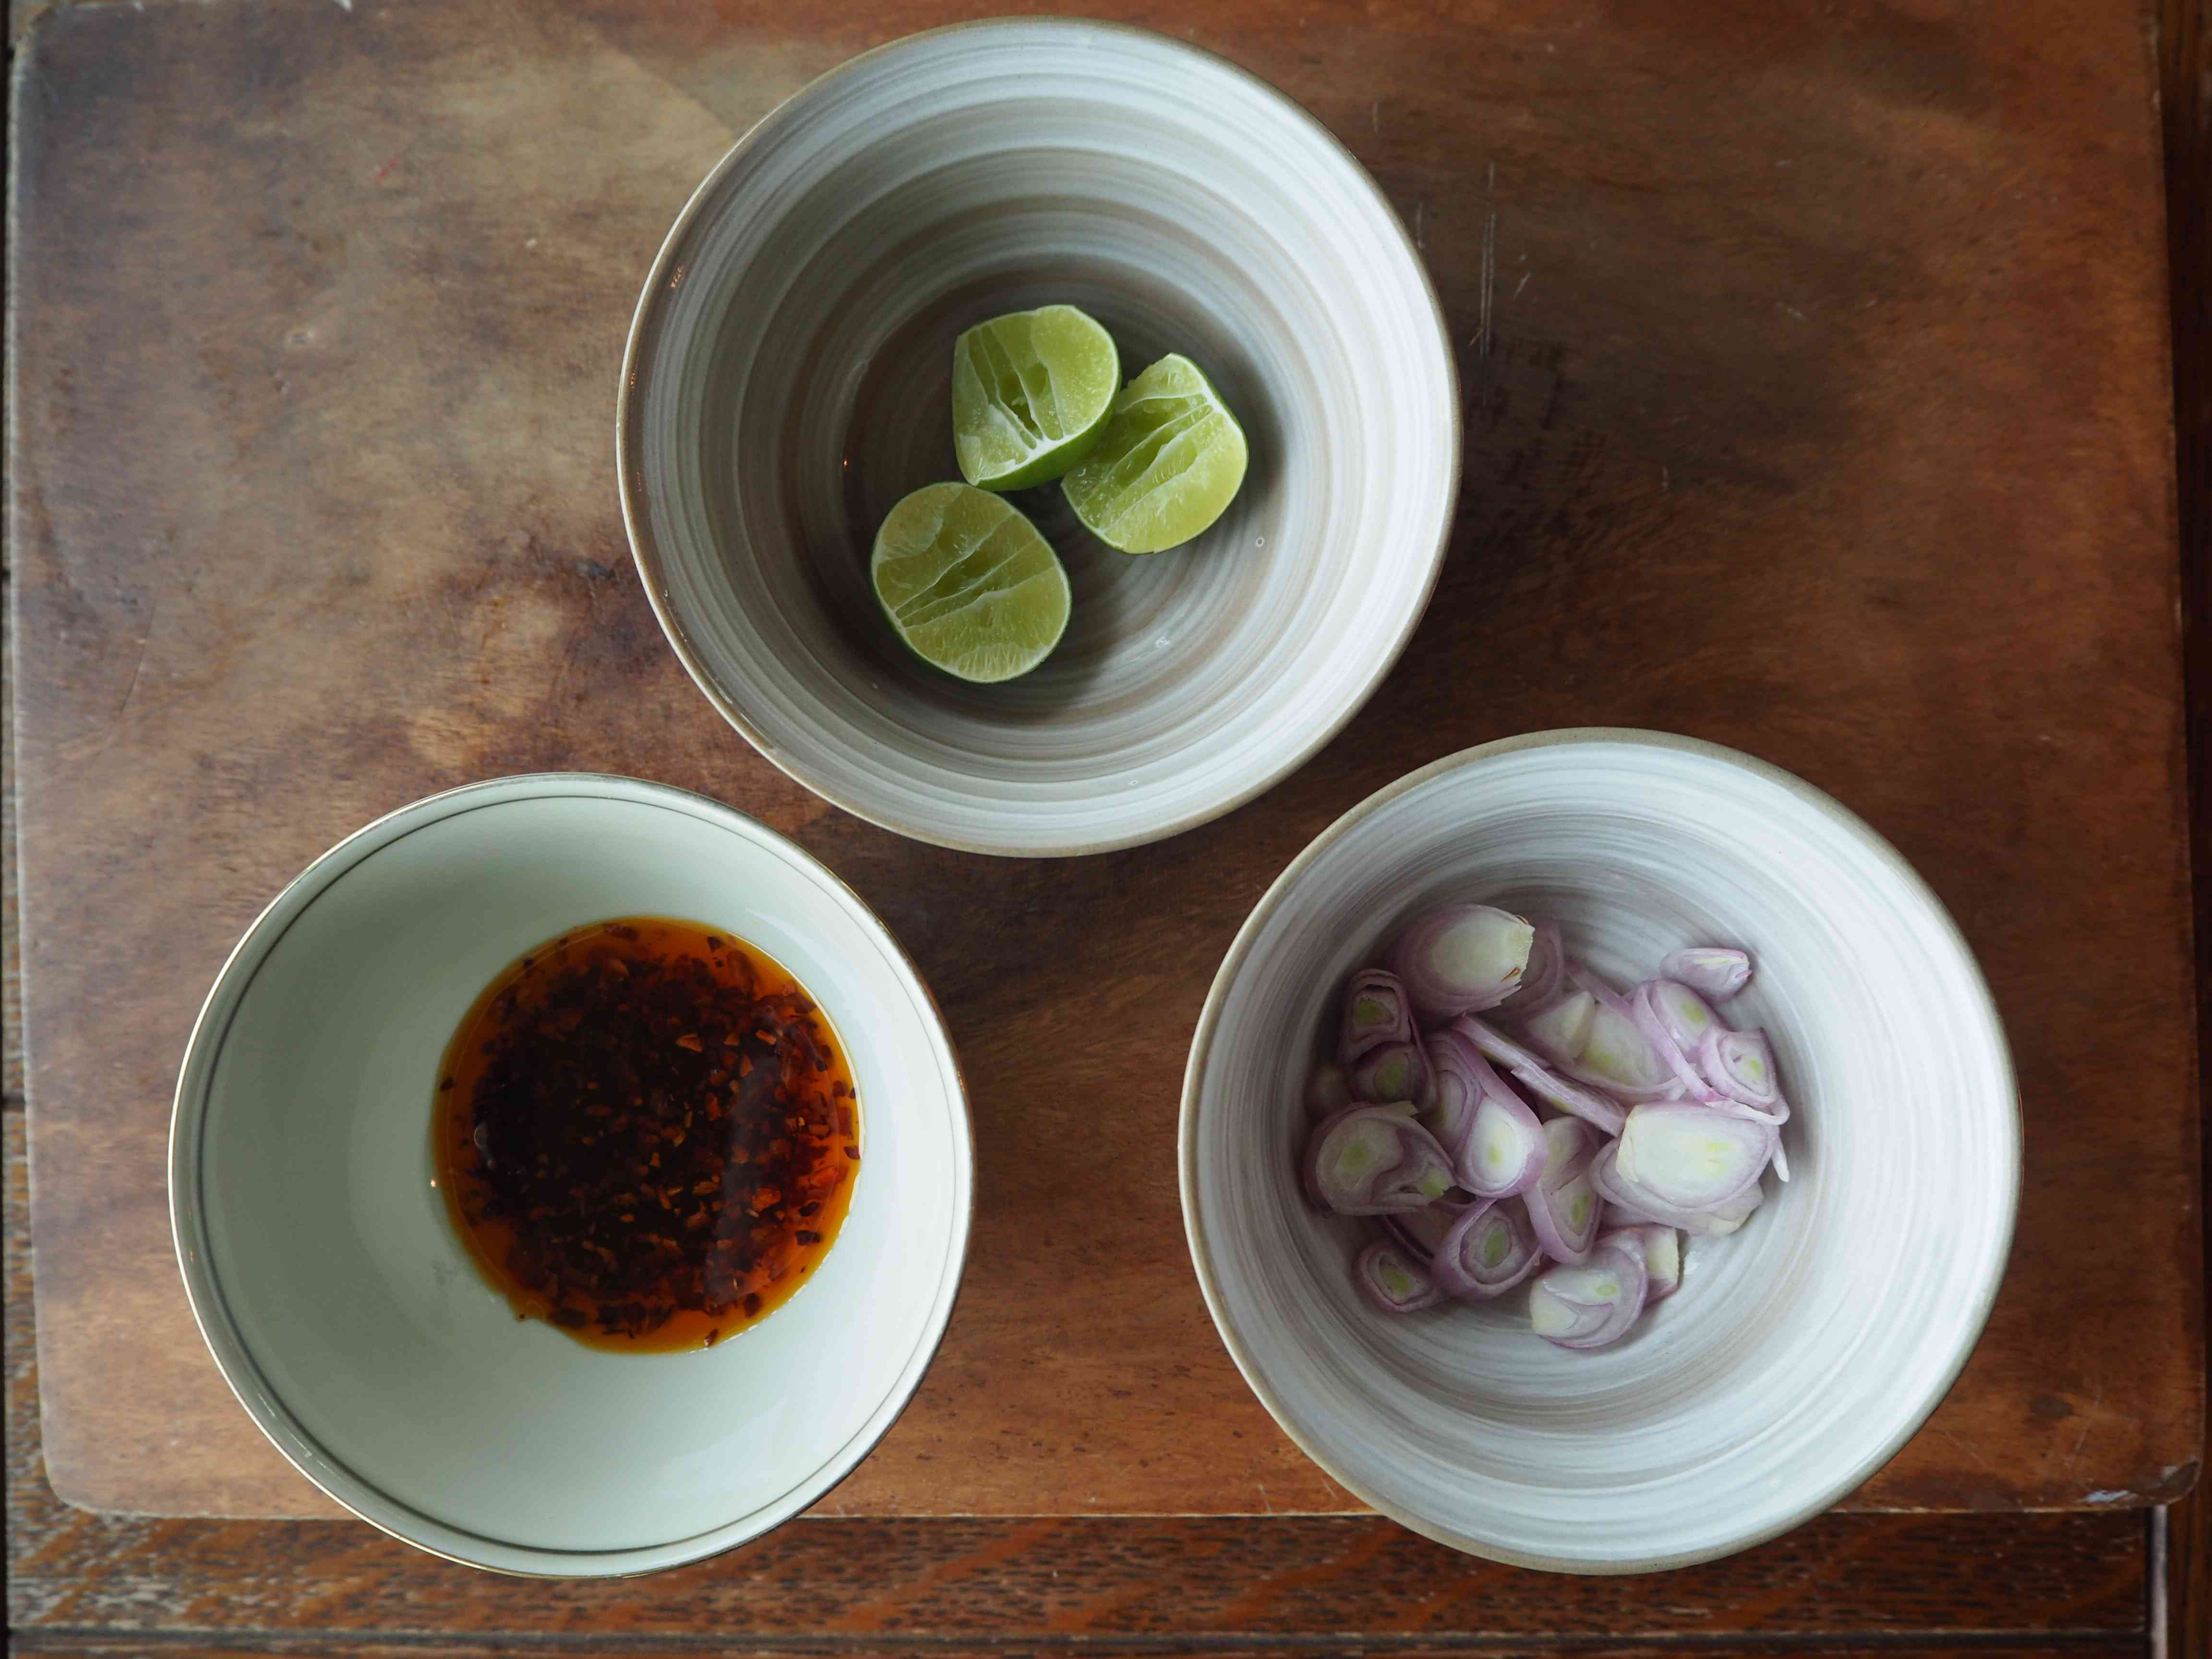 condiments for khao soi